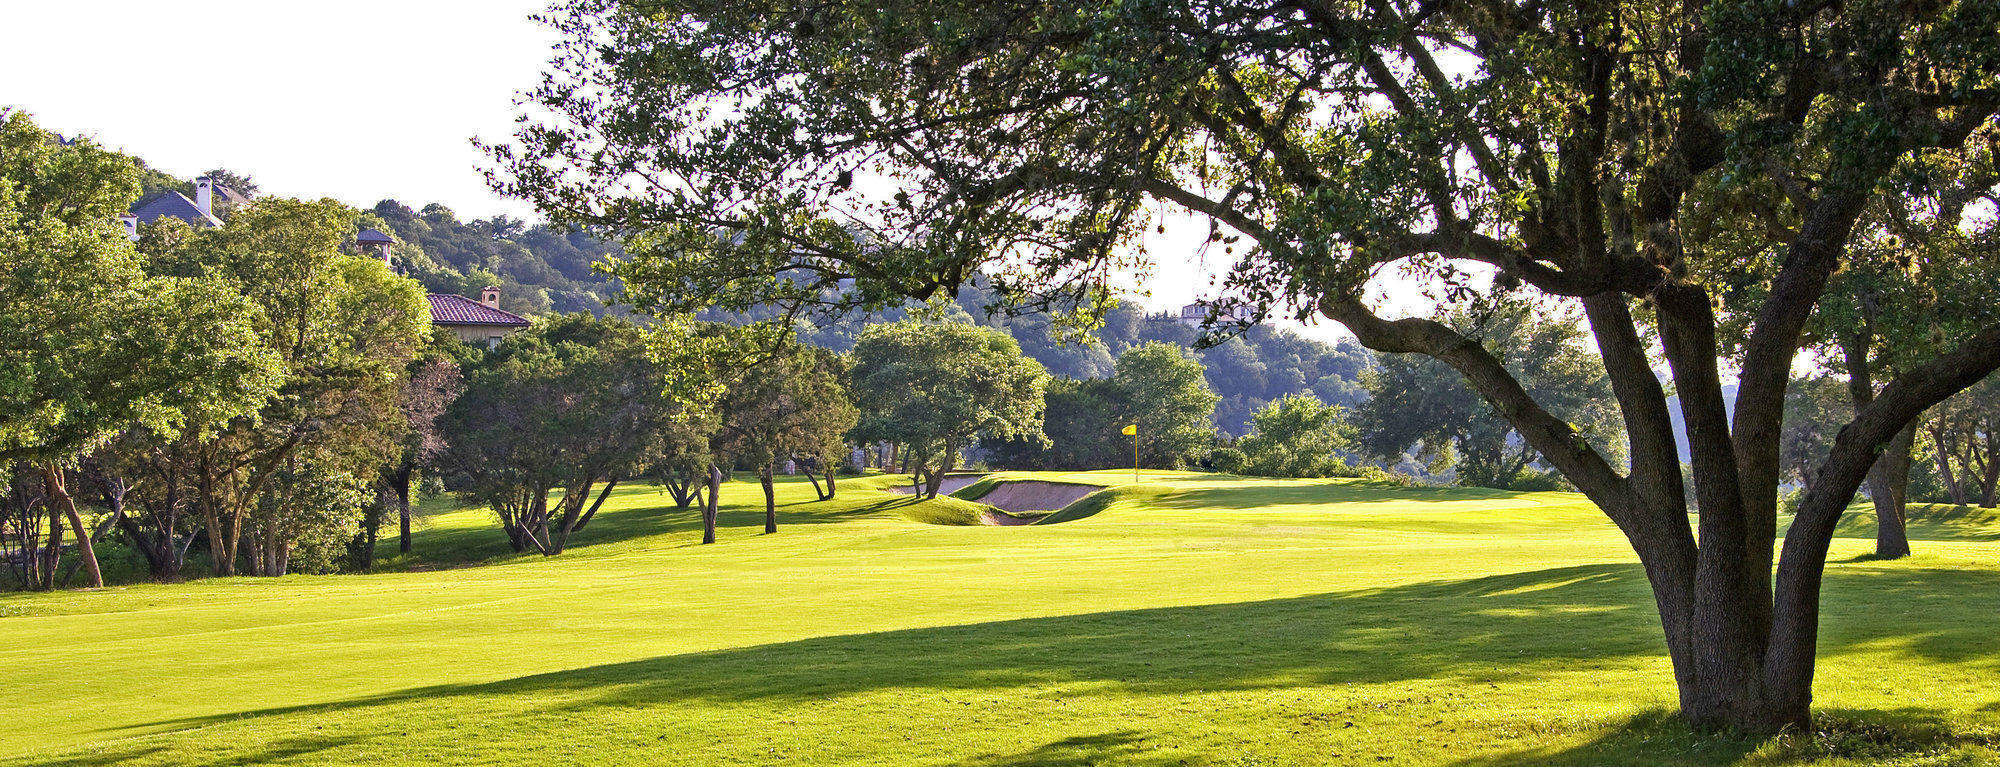 austin homes for sale with a golf course view